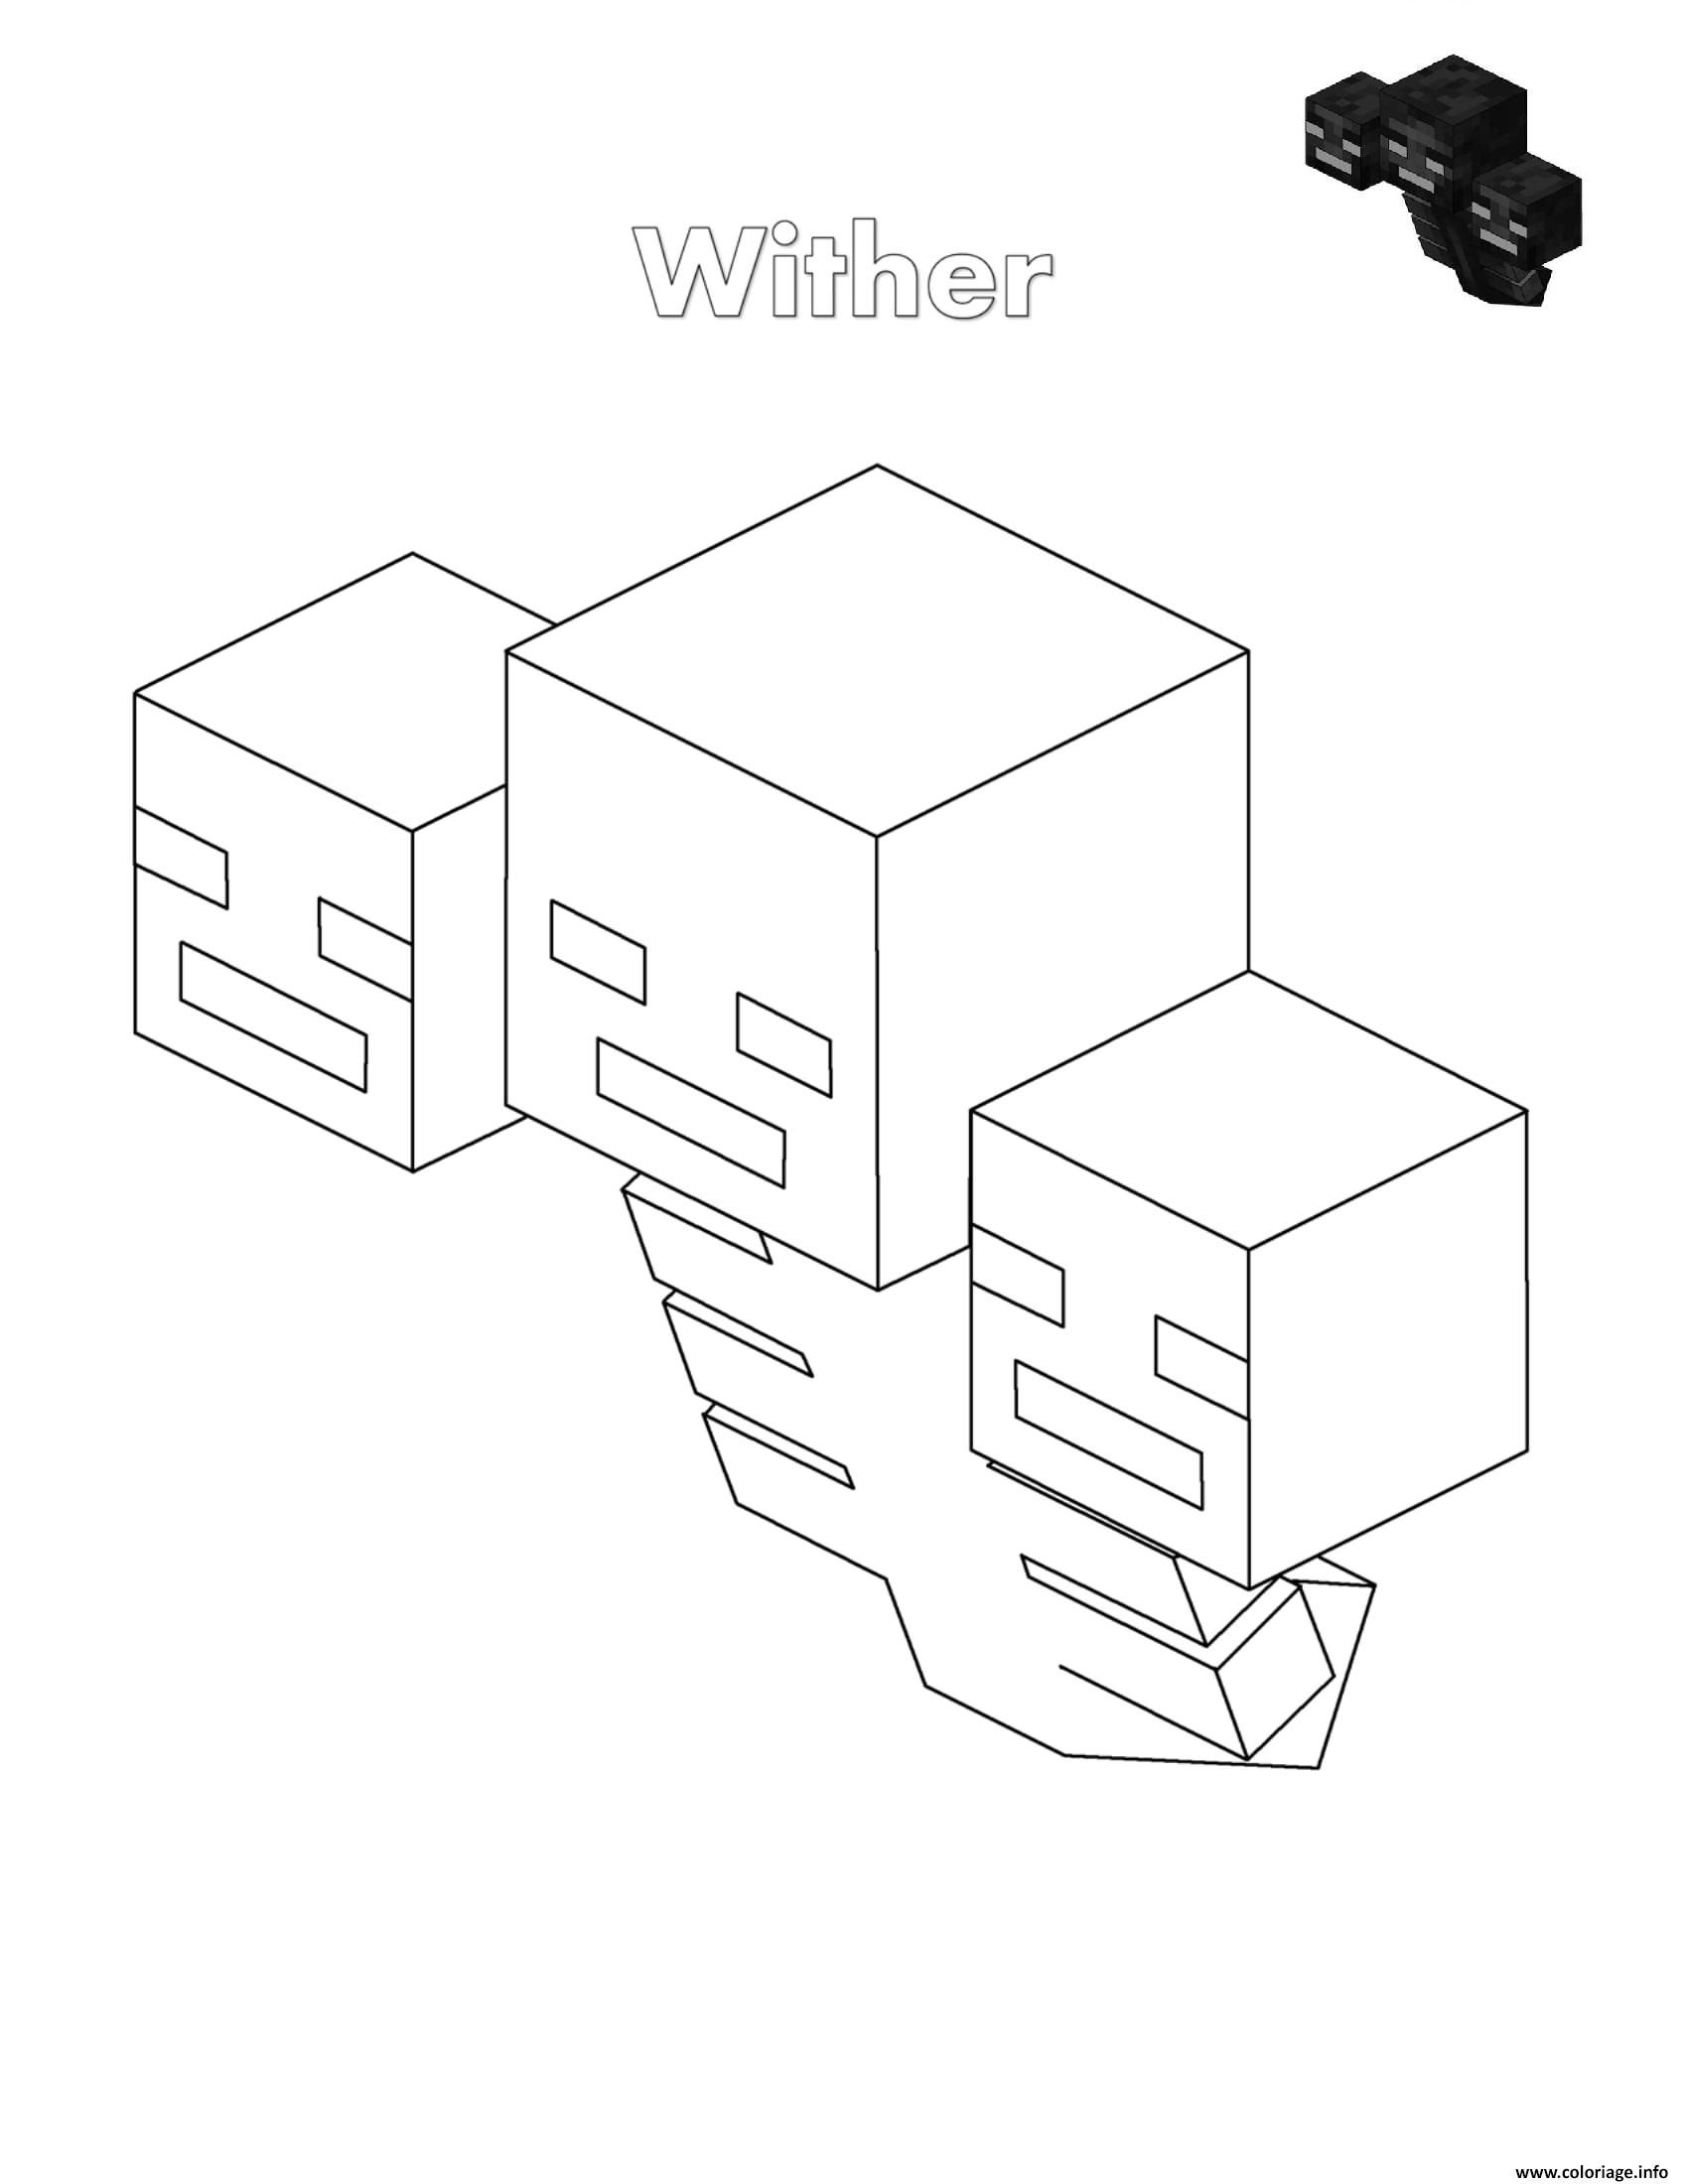 Coloriage Wither Minecraft Dessin A Imprimer Coloriage Lego Coloriage Coloriage Minecraft